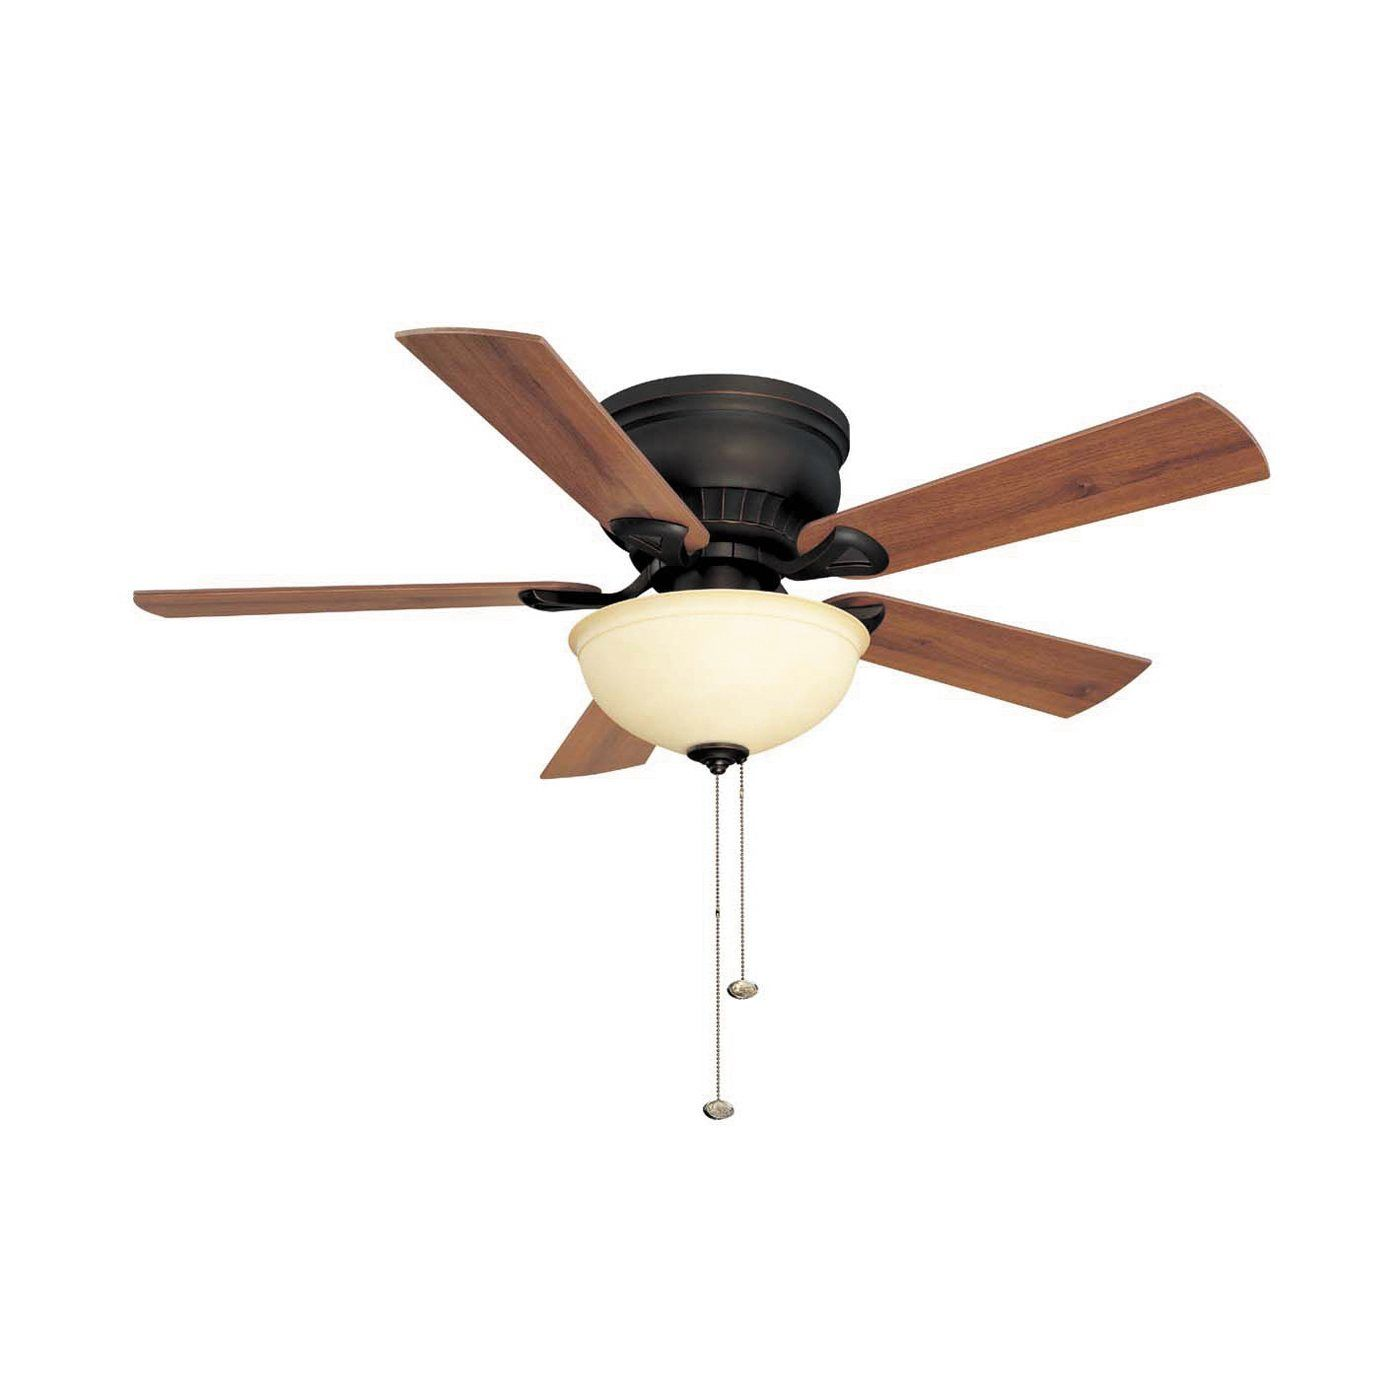 Litex CSU44 44 in 3 Light Crosley Flushmount Ceiling Fan